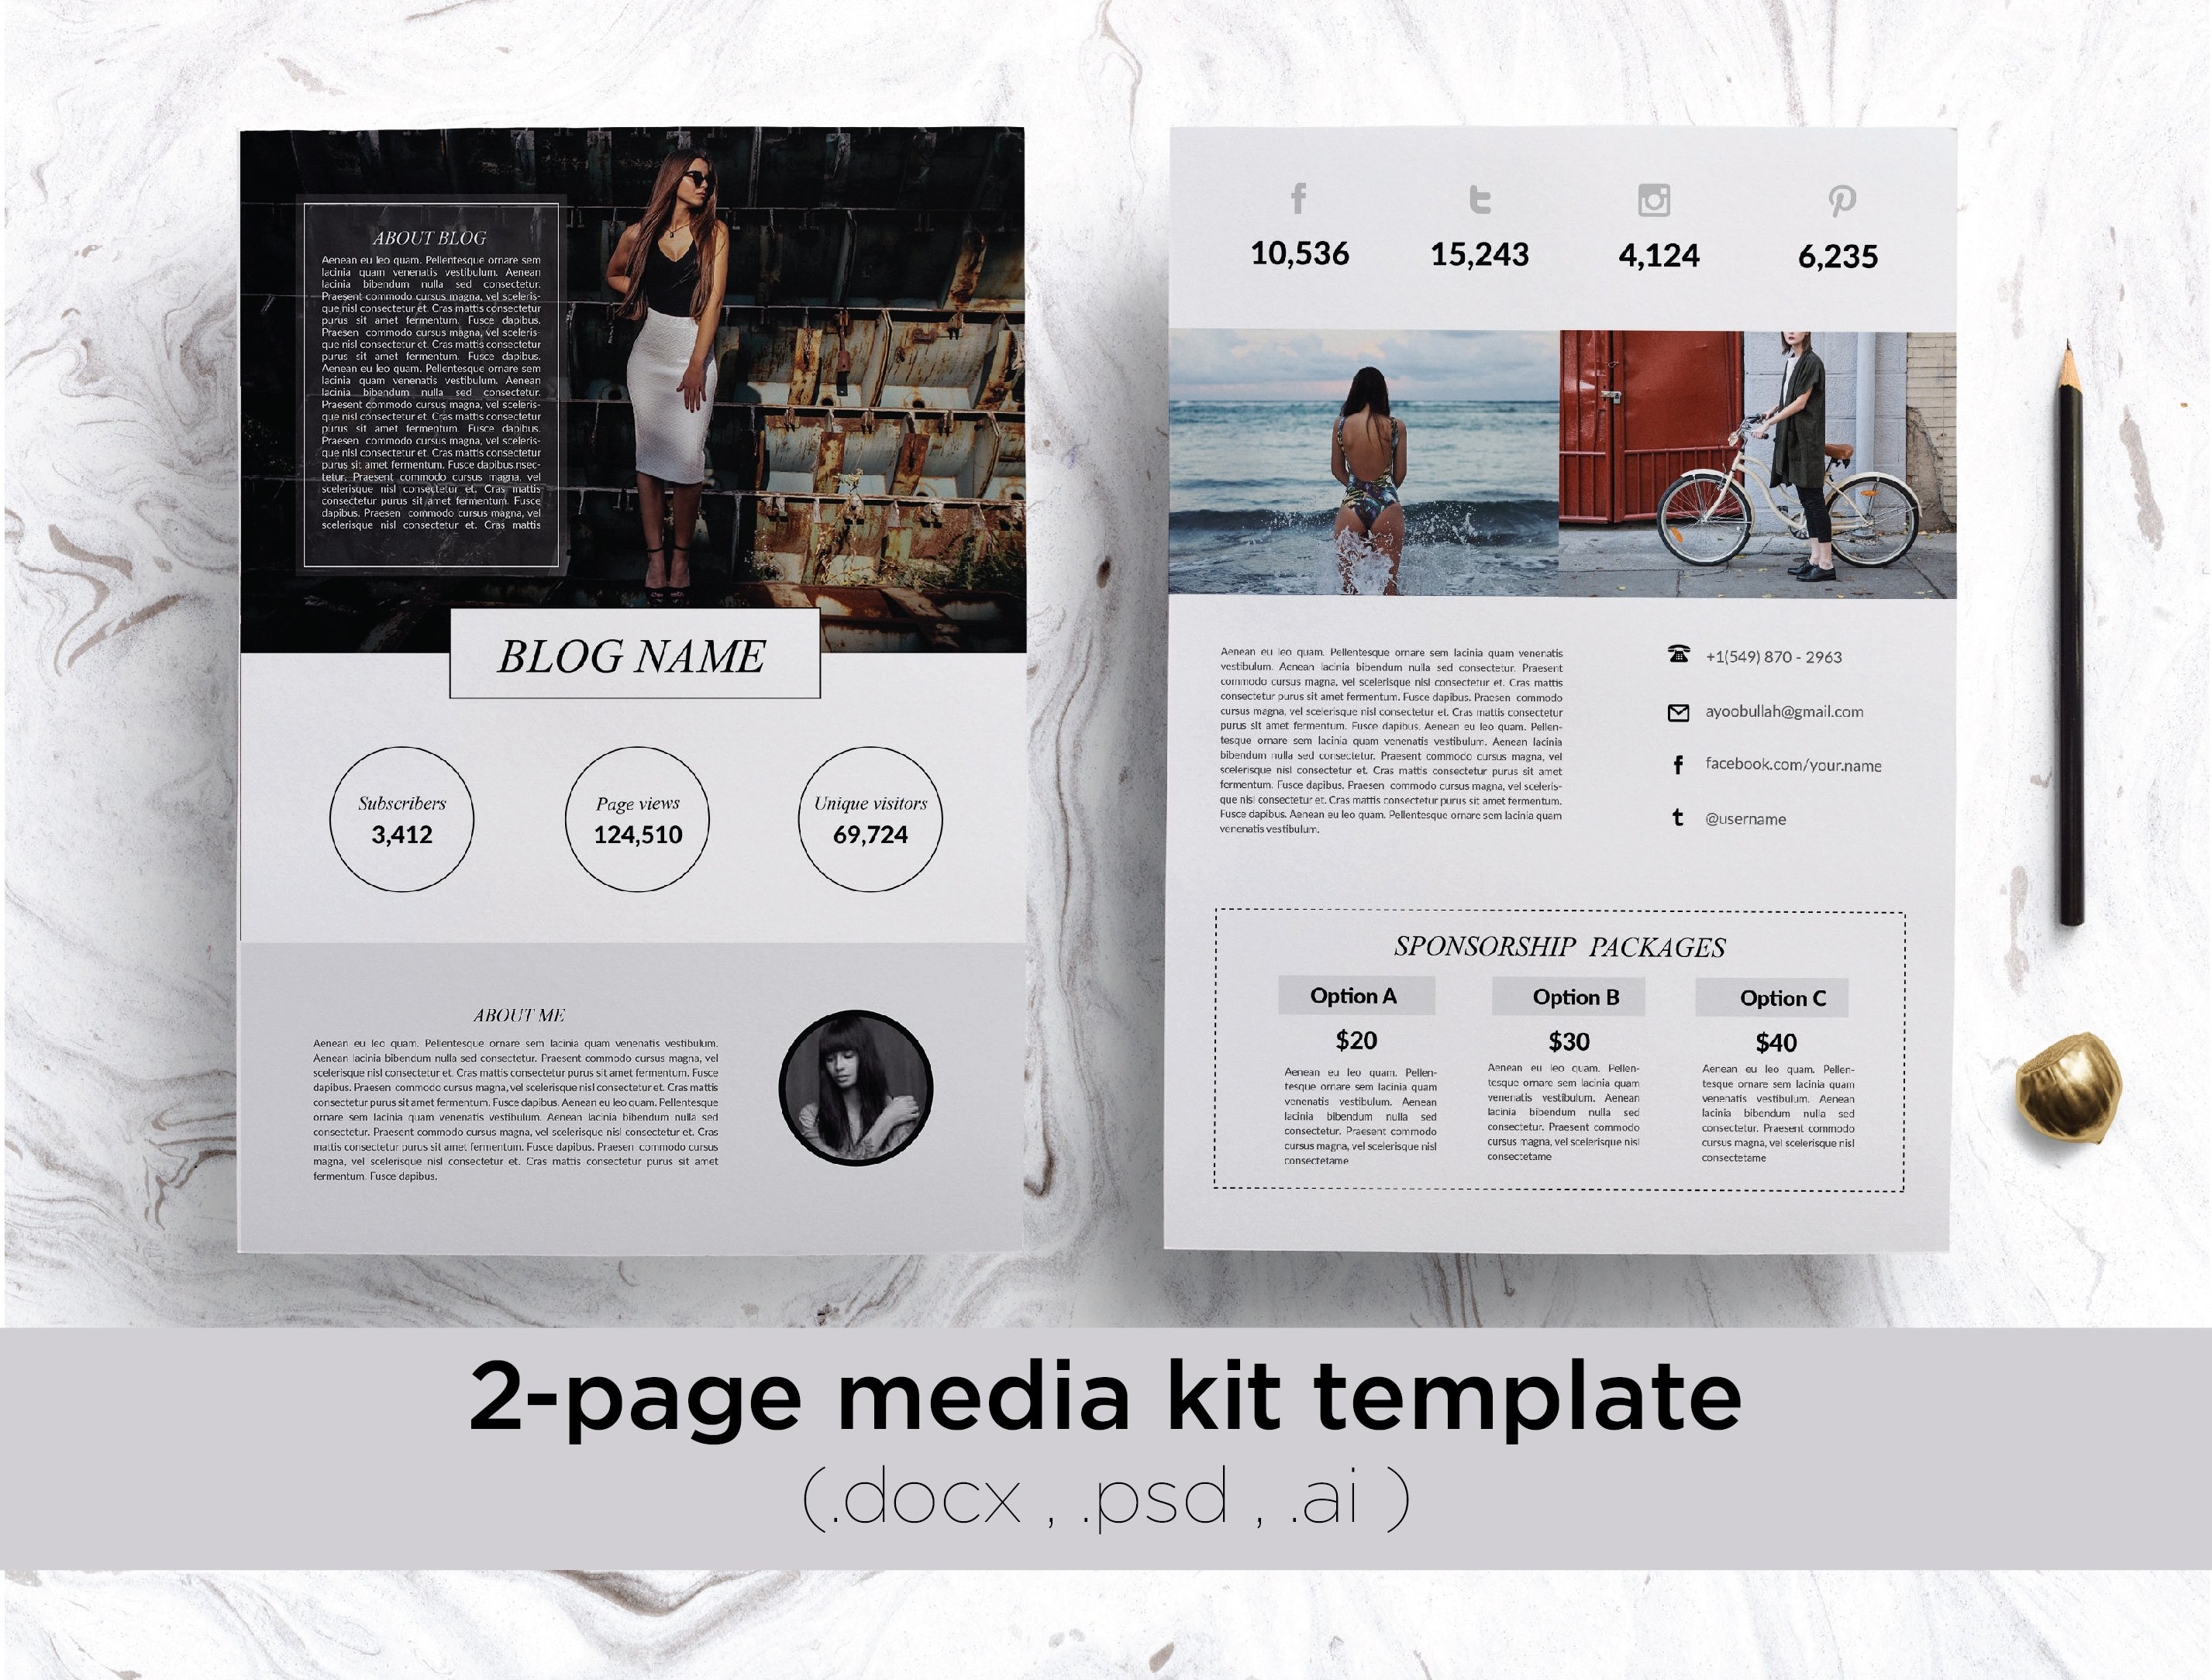 Page Media Kit Template Stationery Templates Creative Market - Magazine editorial calendar template